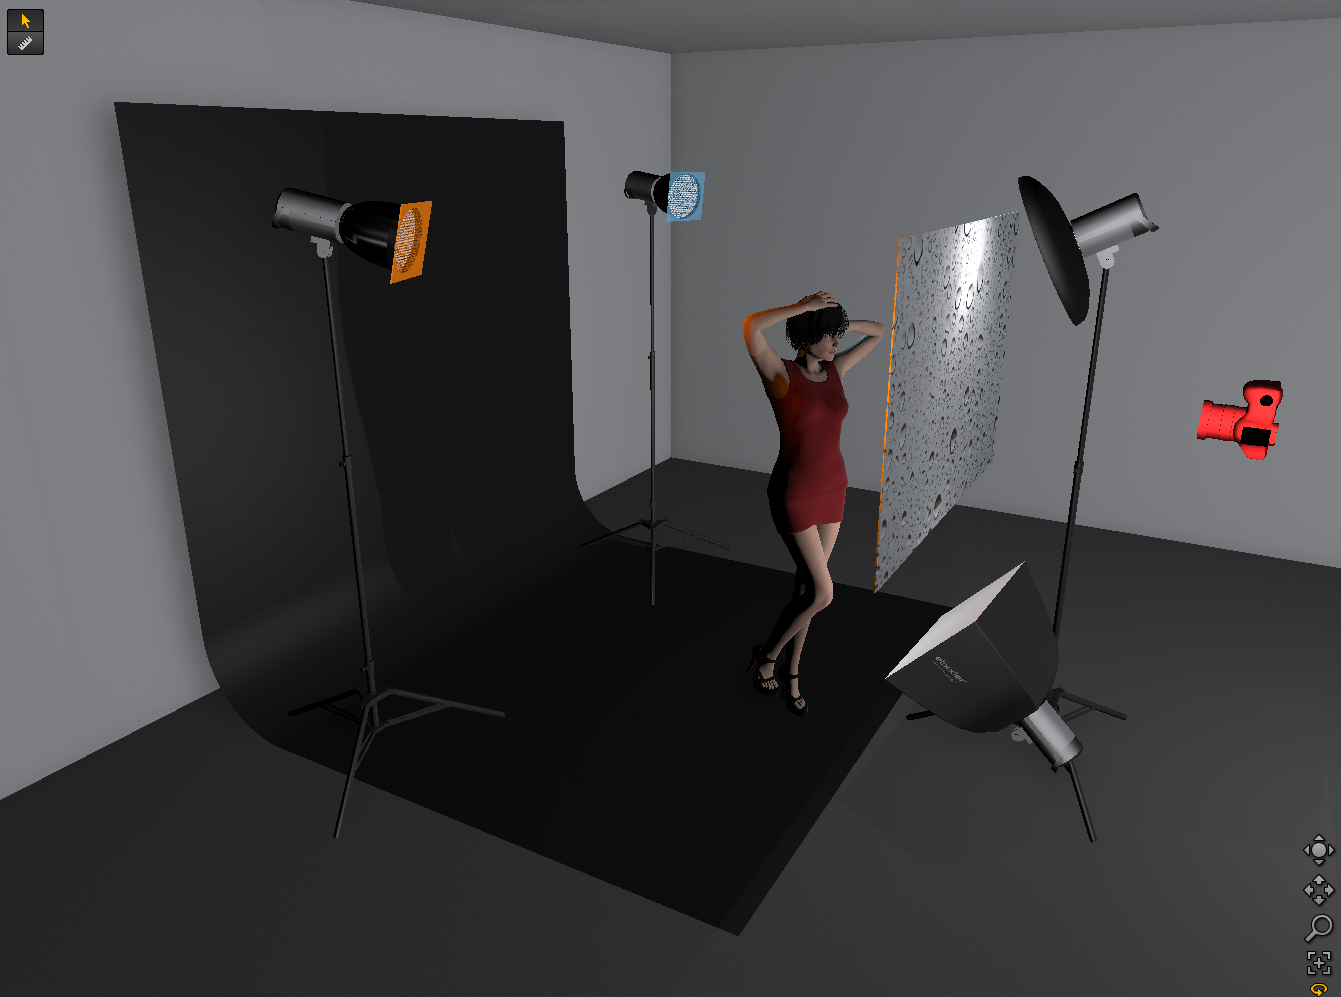 This is the four light setup.  You'll see that the two gridded spots are positioned behind the model pointing towards the camera, these both have gels attached. The beauty dish is positioned nice and close to model and the small soft box is on the floor acting as a fill light.